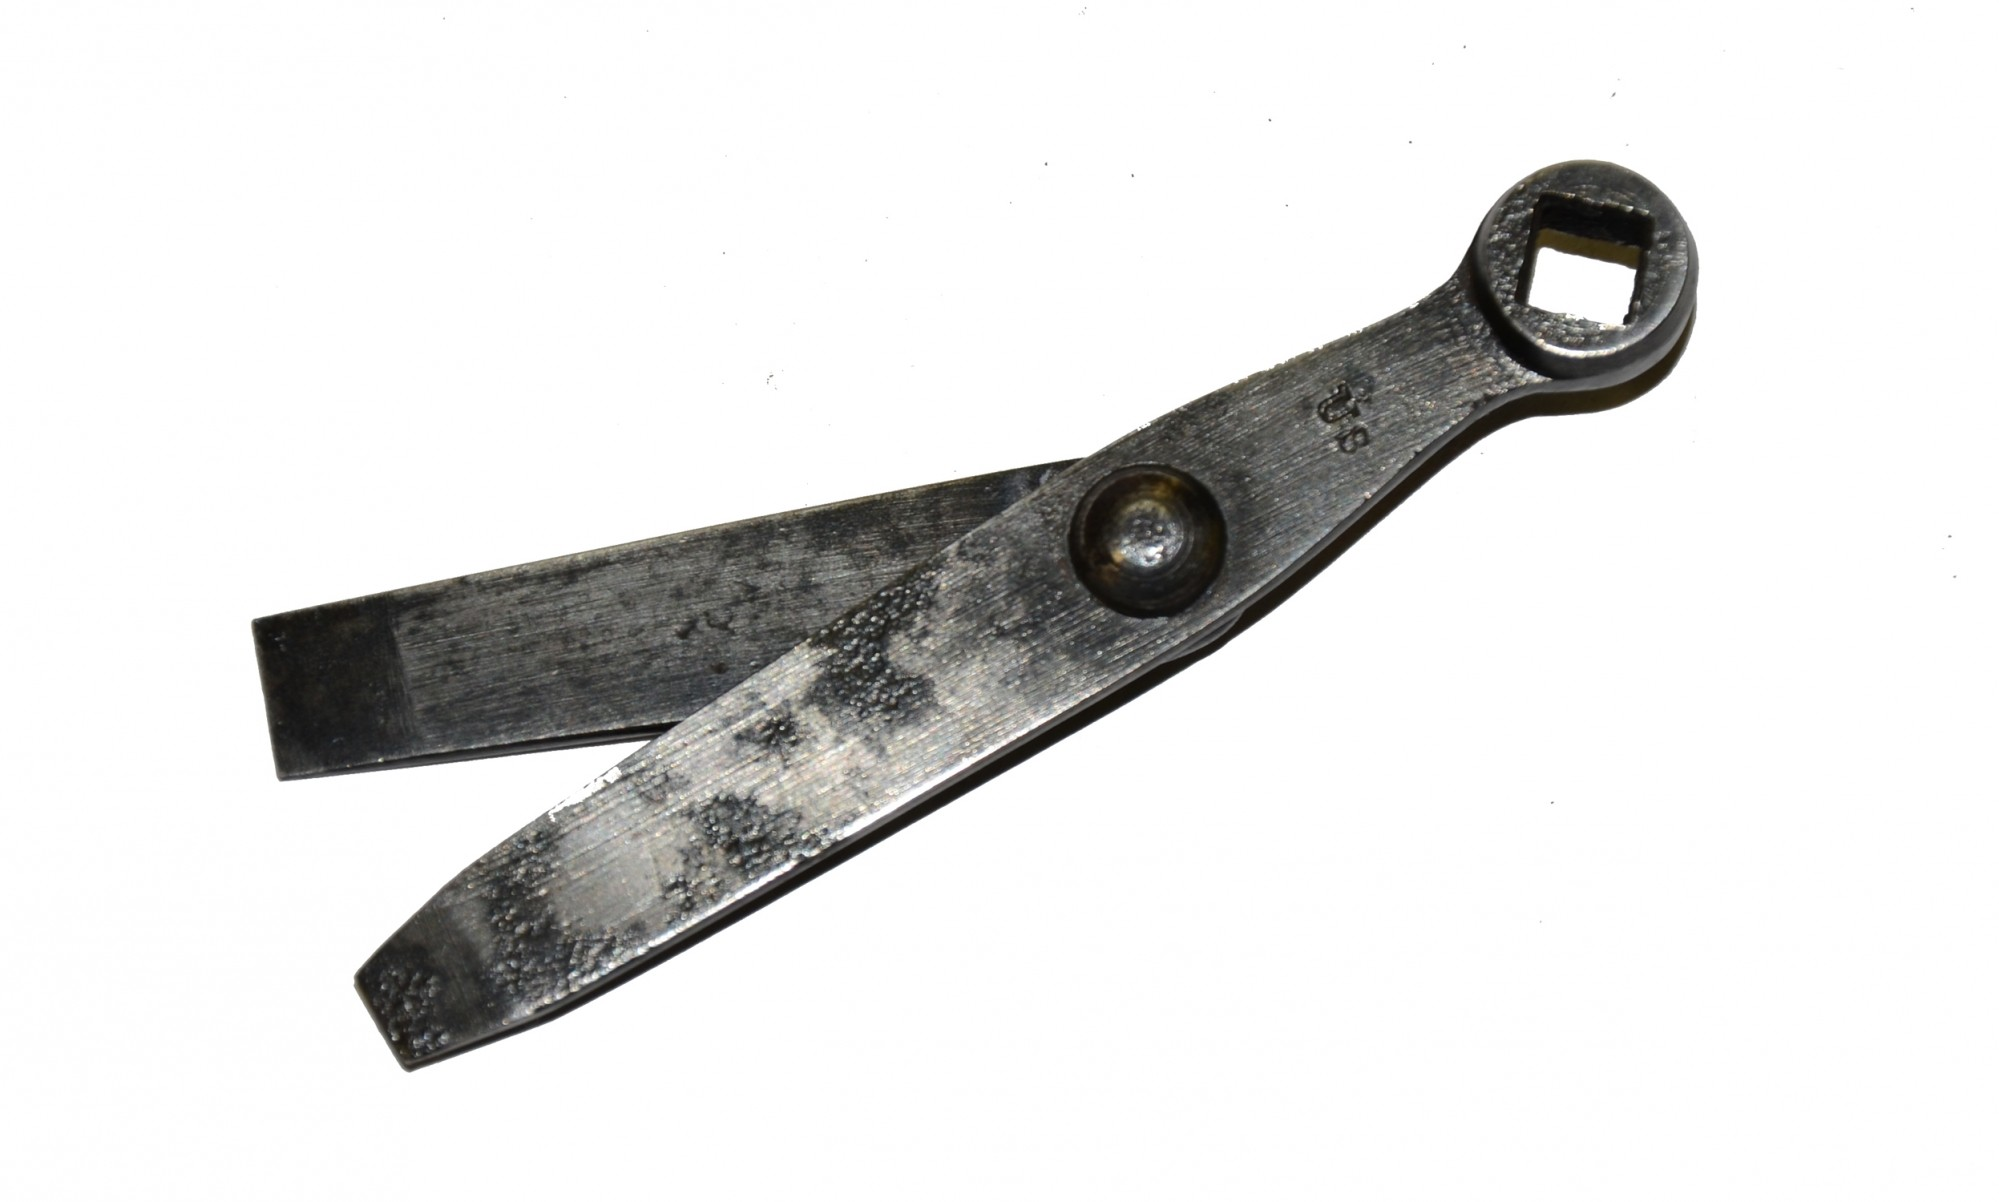 MODEL 1841/1842 MUSKET WRENCH